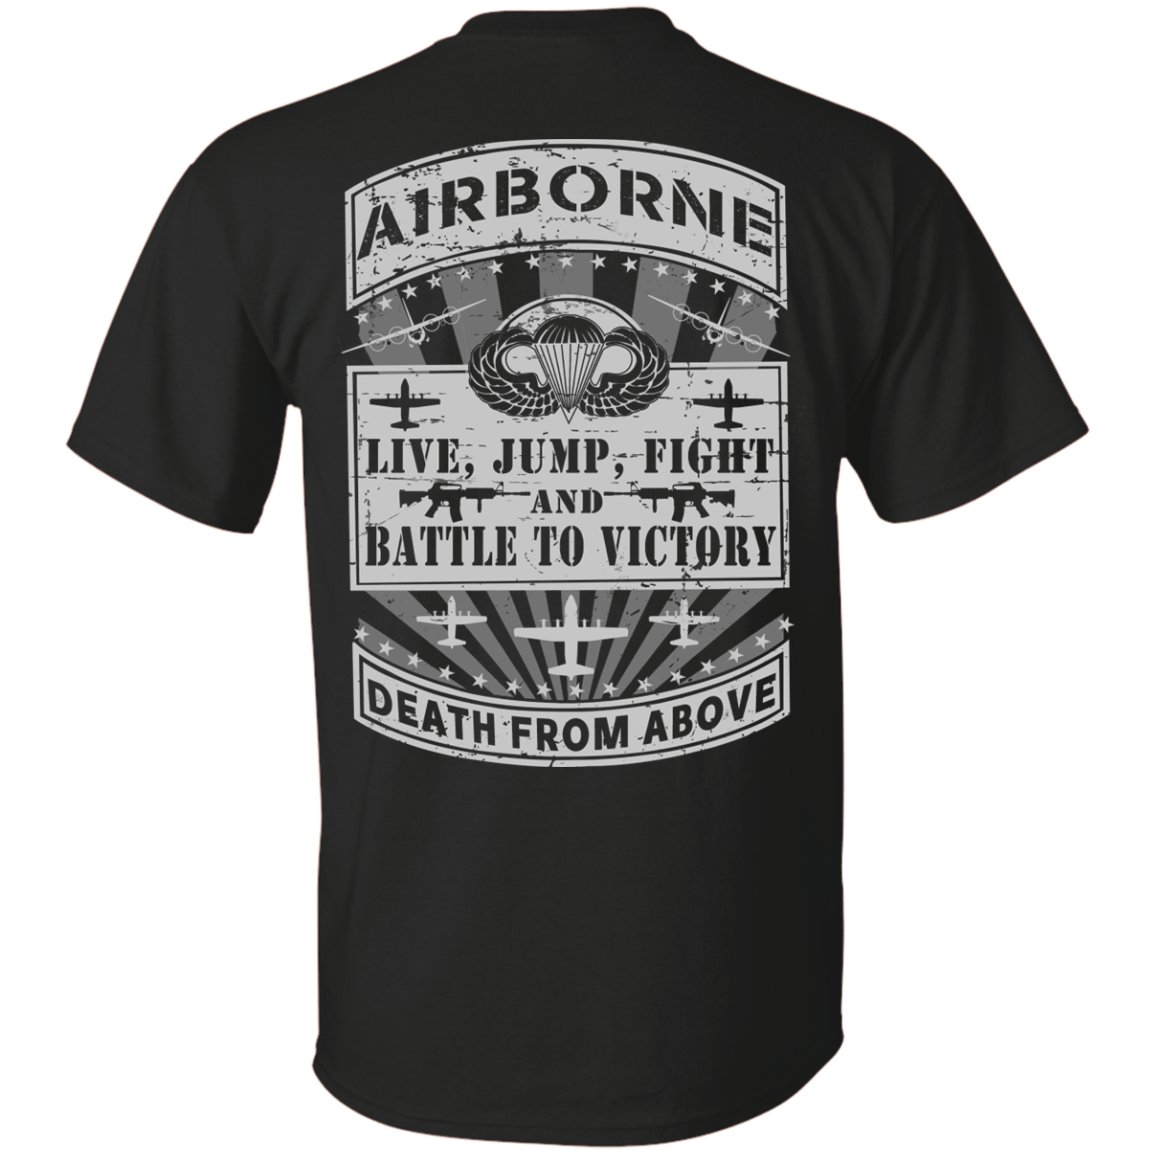 Airborne t shirt: Death from above